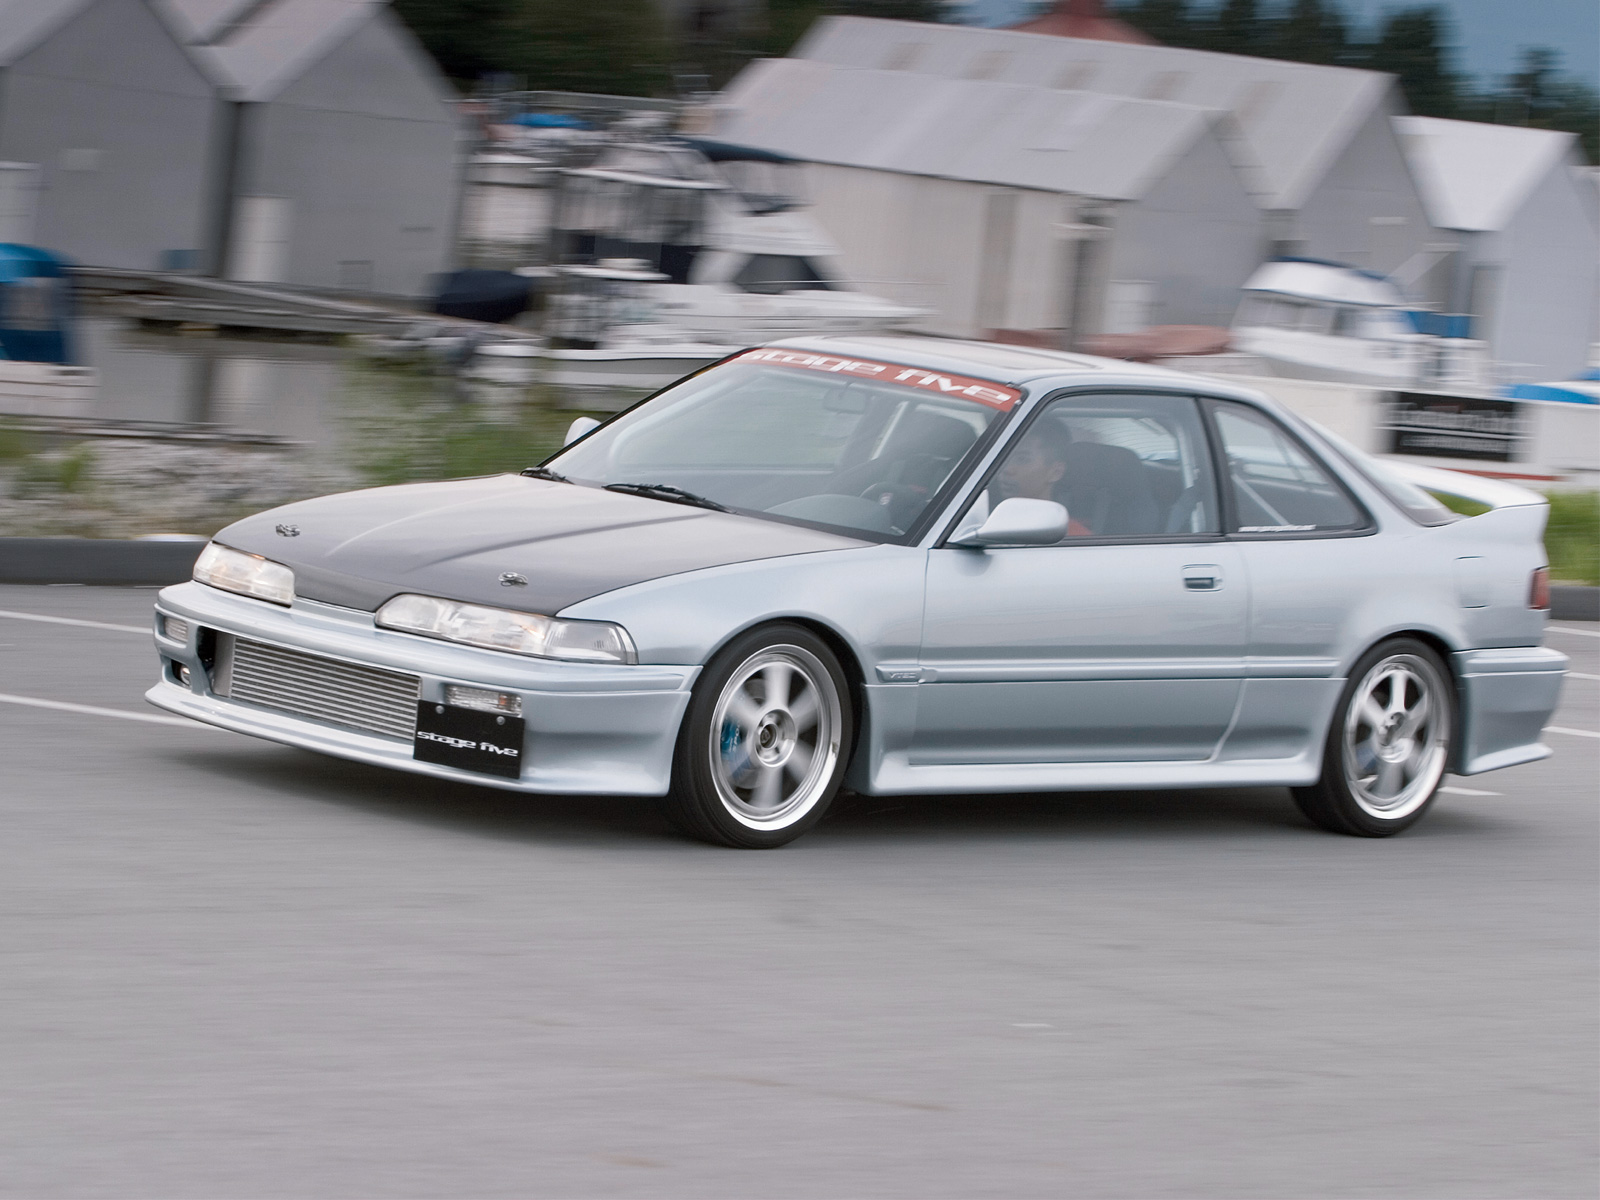 integra gsr version team size sale name for image should a sell views larger forum forums my i acura your click